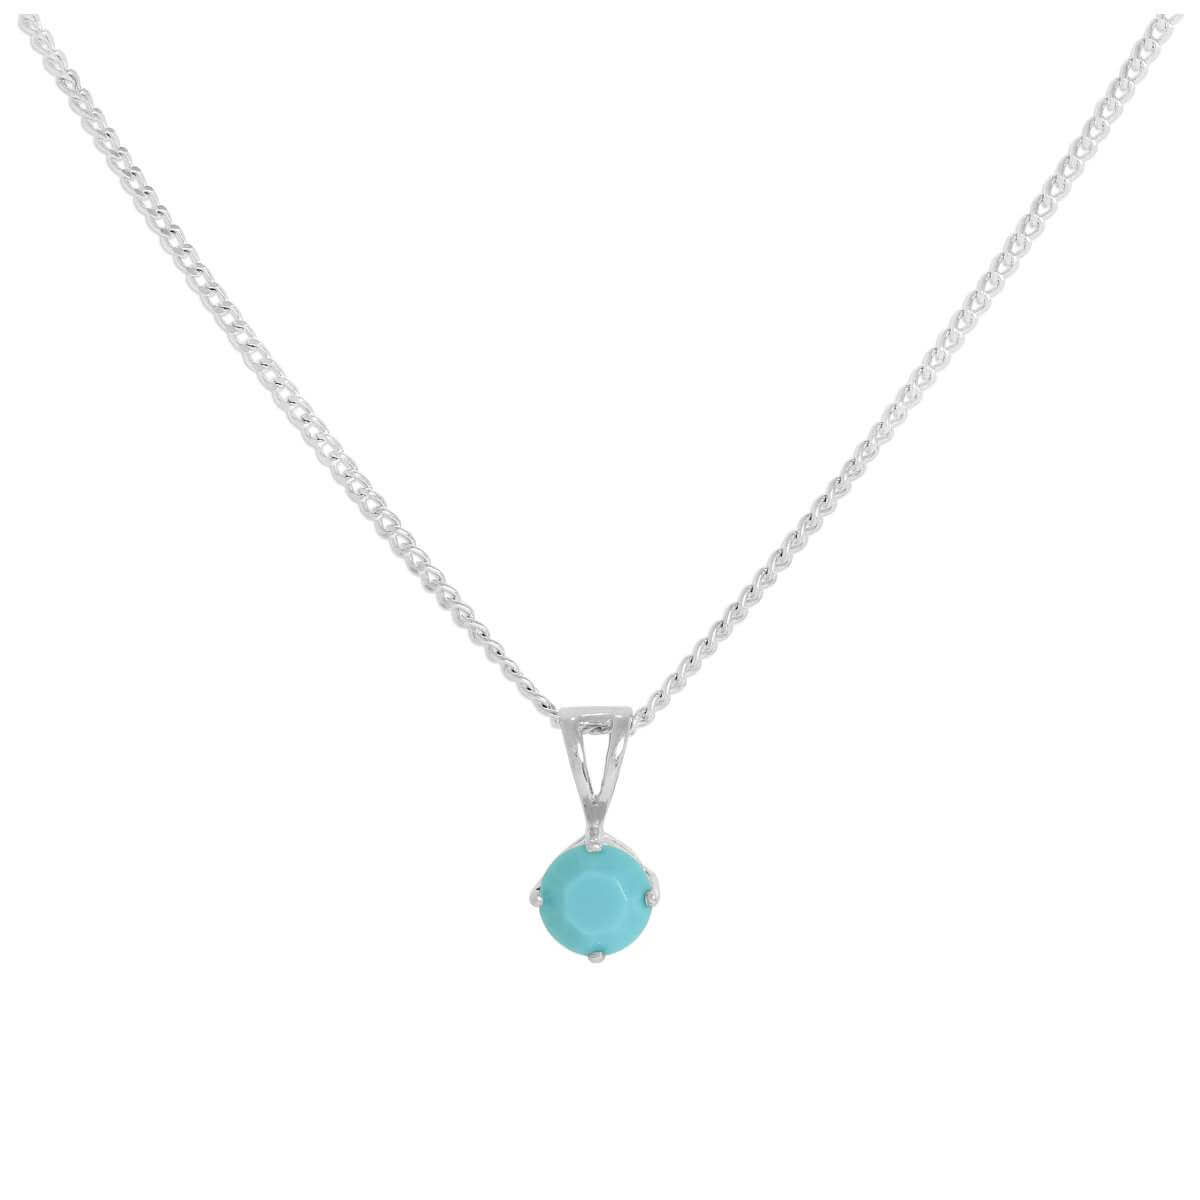 Sterling Silver & Turquoise Crystal Made with Swarovski Elements December Birthstone Pendant Necklace 16 - 24 Inches